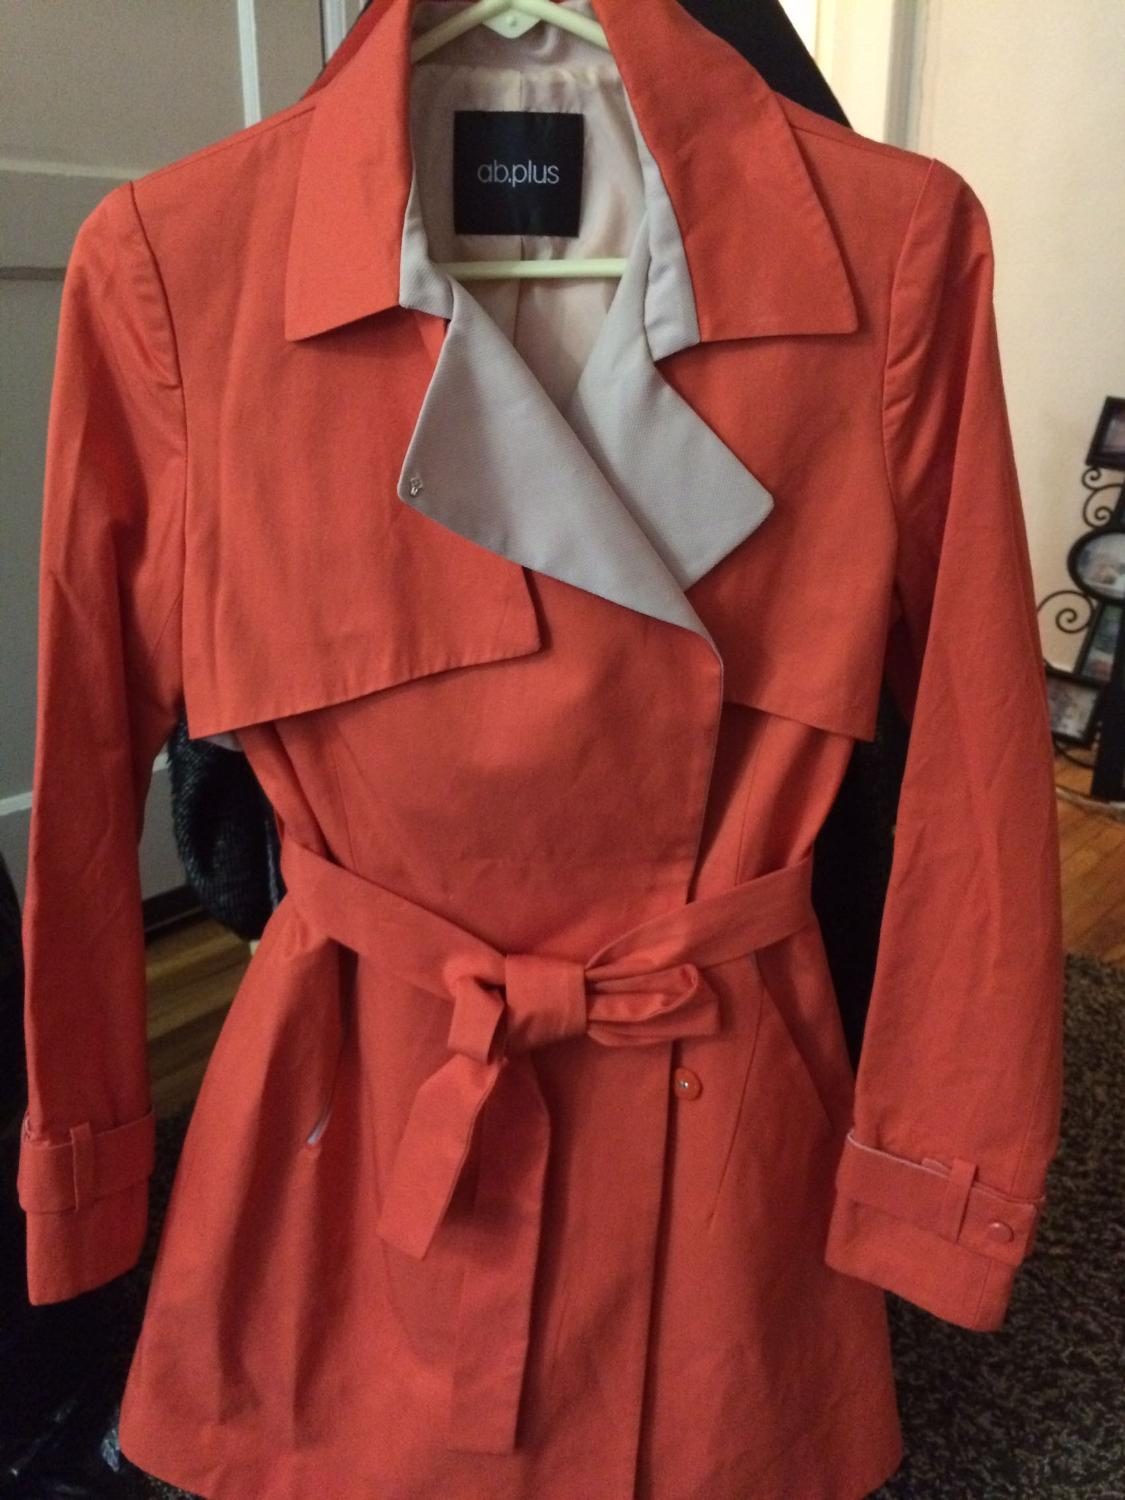 Best Orange Jacket Female Medium Size For Sale In Minot